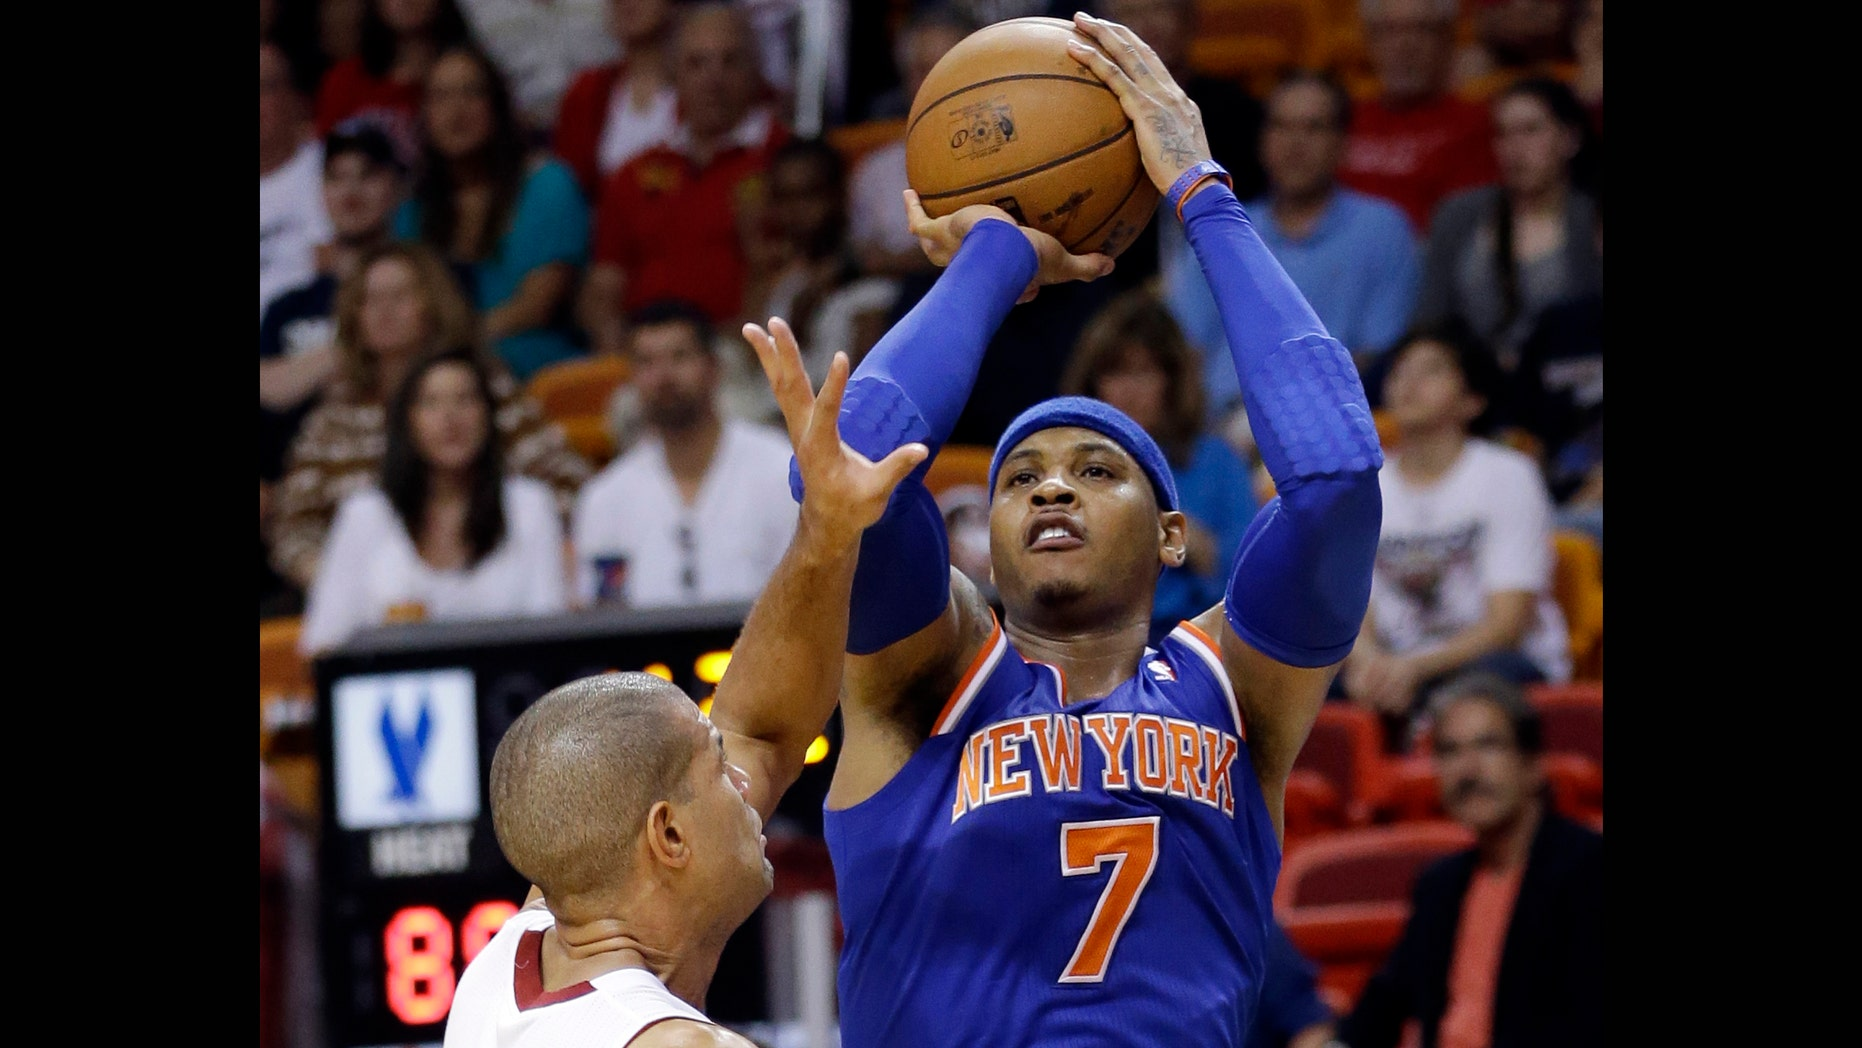 New York Knicks forward Carmelo Anthony (7) takes a shot against Miami Heat forward Shane Battier during the second half of an NBA basketball game, Tuesday, April 2, 2013 in Miami. Anthony tied his career high with 50 points in the Knicks' 102-90 win. (AP Photo/Wilfredo Lee)